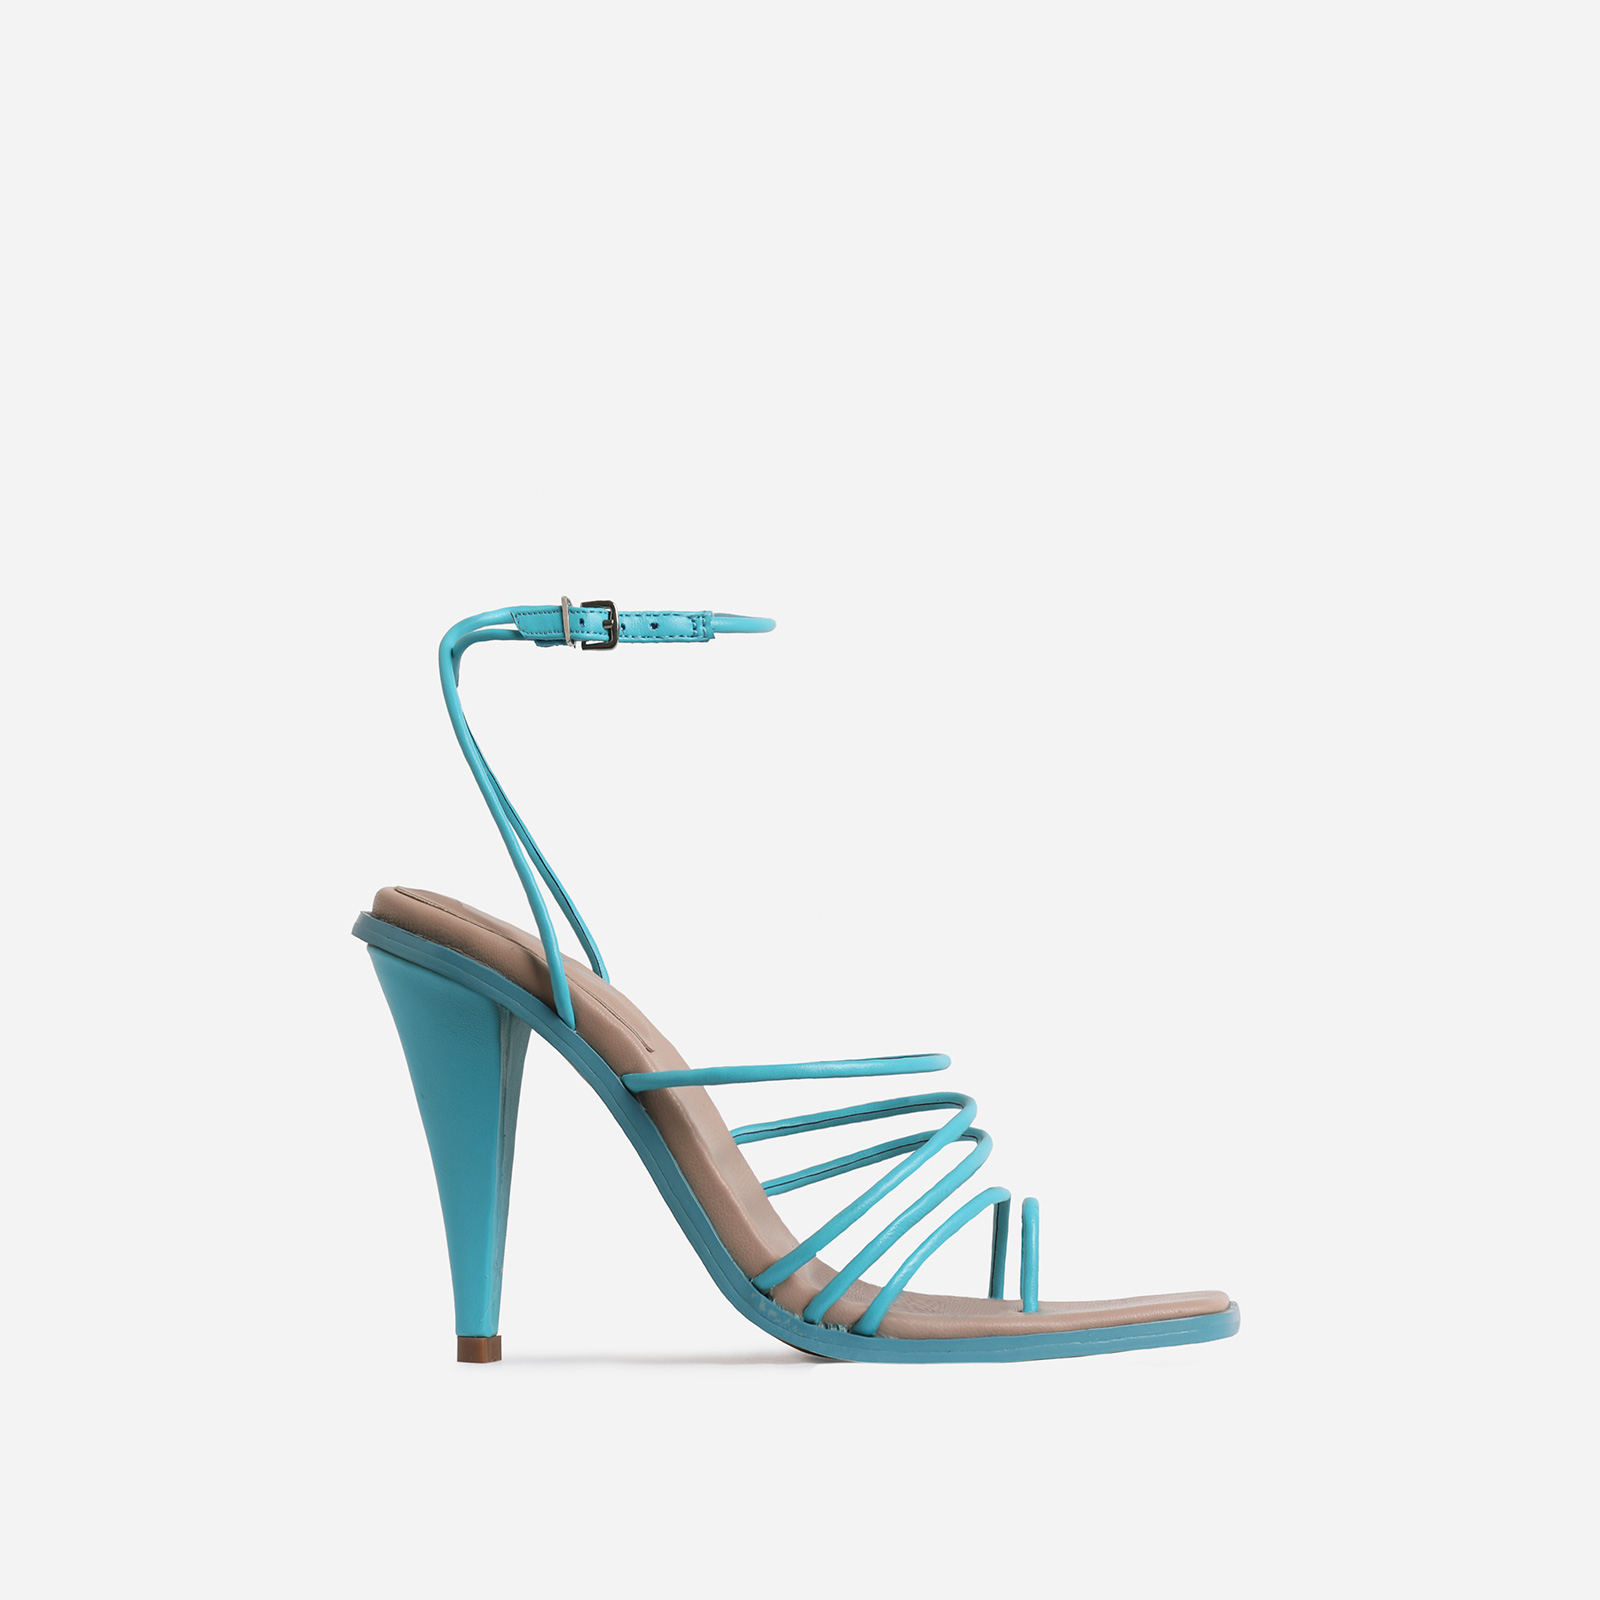 Amory Square Toe Strappy Heel In Blue Faux Leather